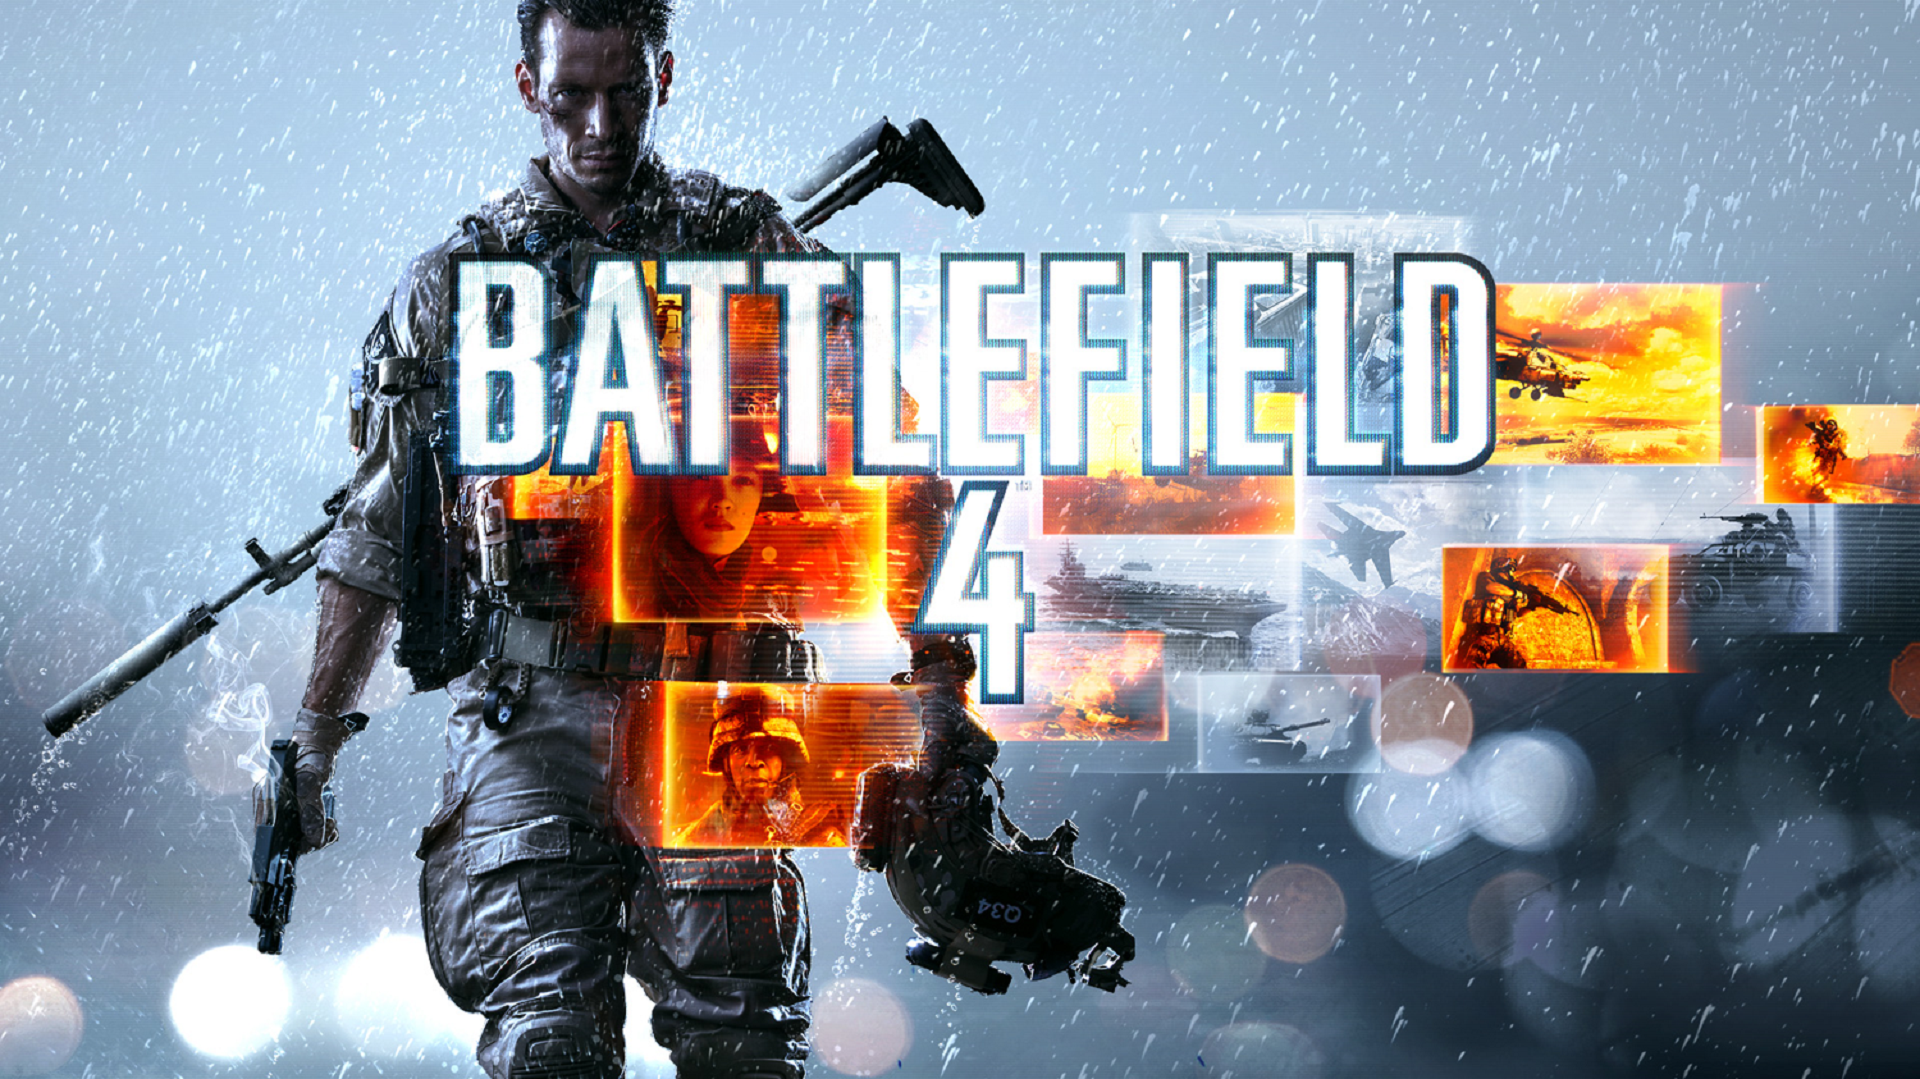 Battlefield 4 wallpaper and background image 1920x1079 id446413 video game battlefield 4 wallpaper voltagebd Image collections